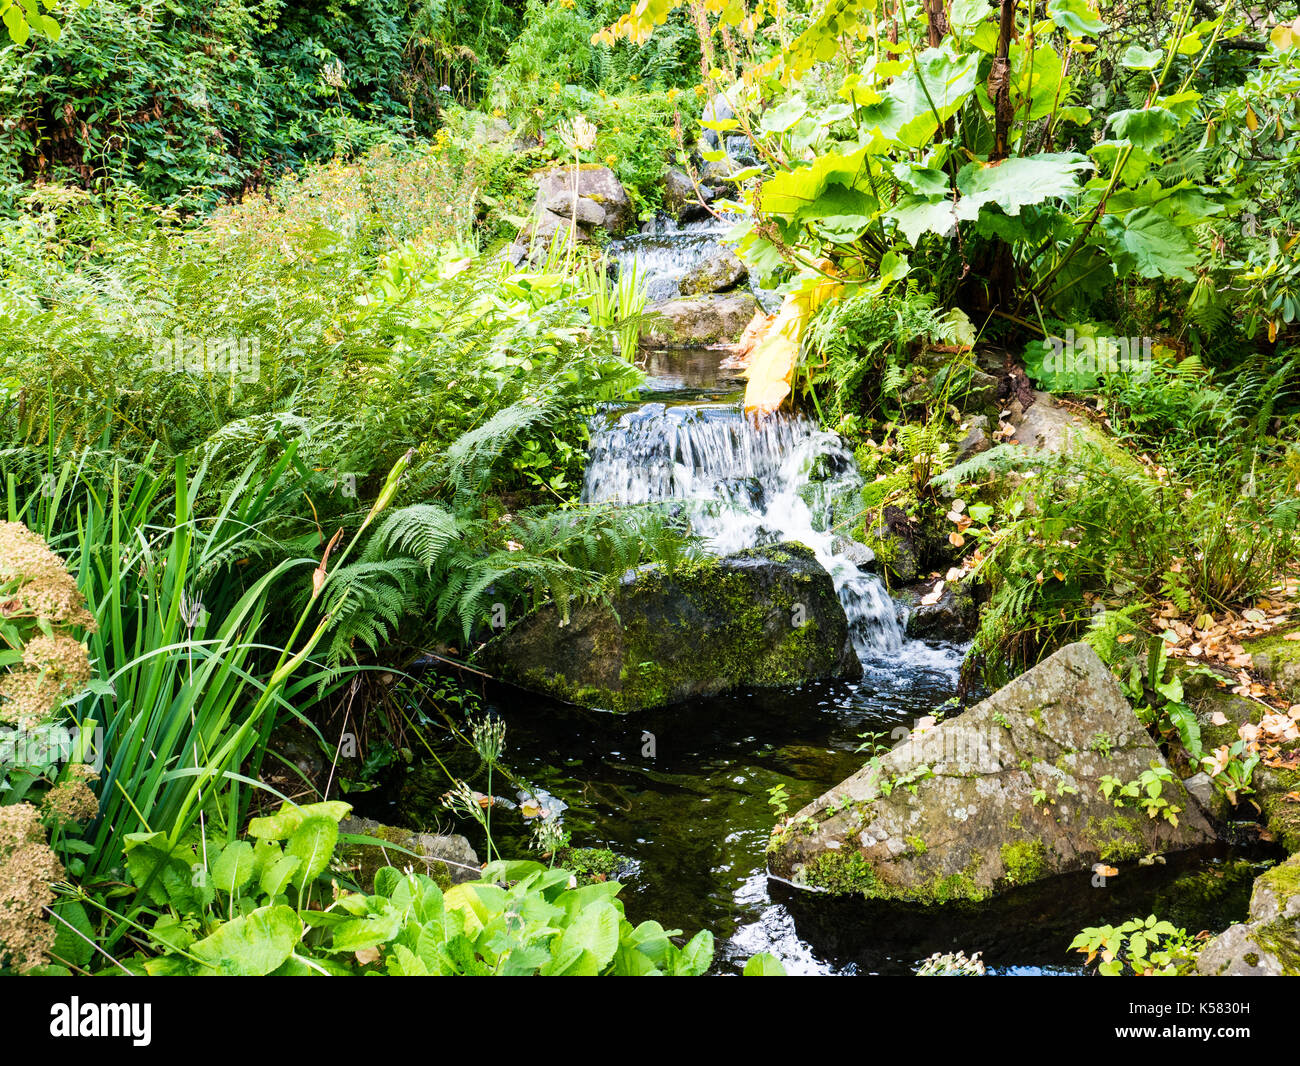 Chinese Hillside, Royal Botanic Garden Edinburgh, Edinburgh, Scotland, UK, GB. Stock Photo